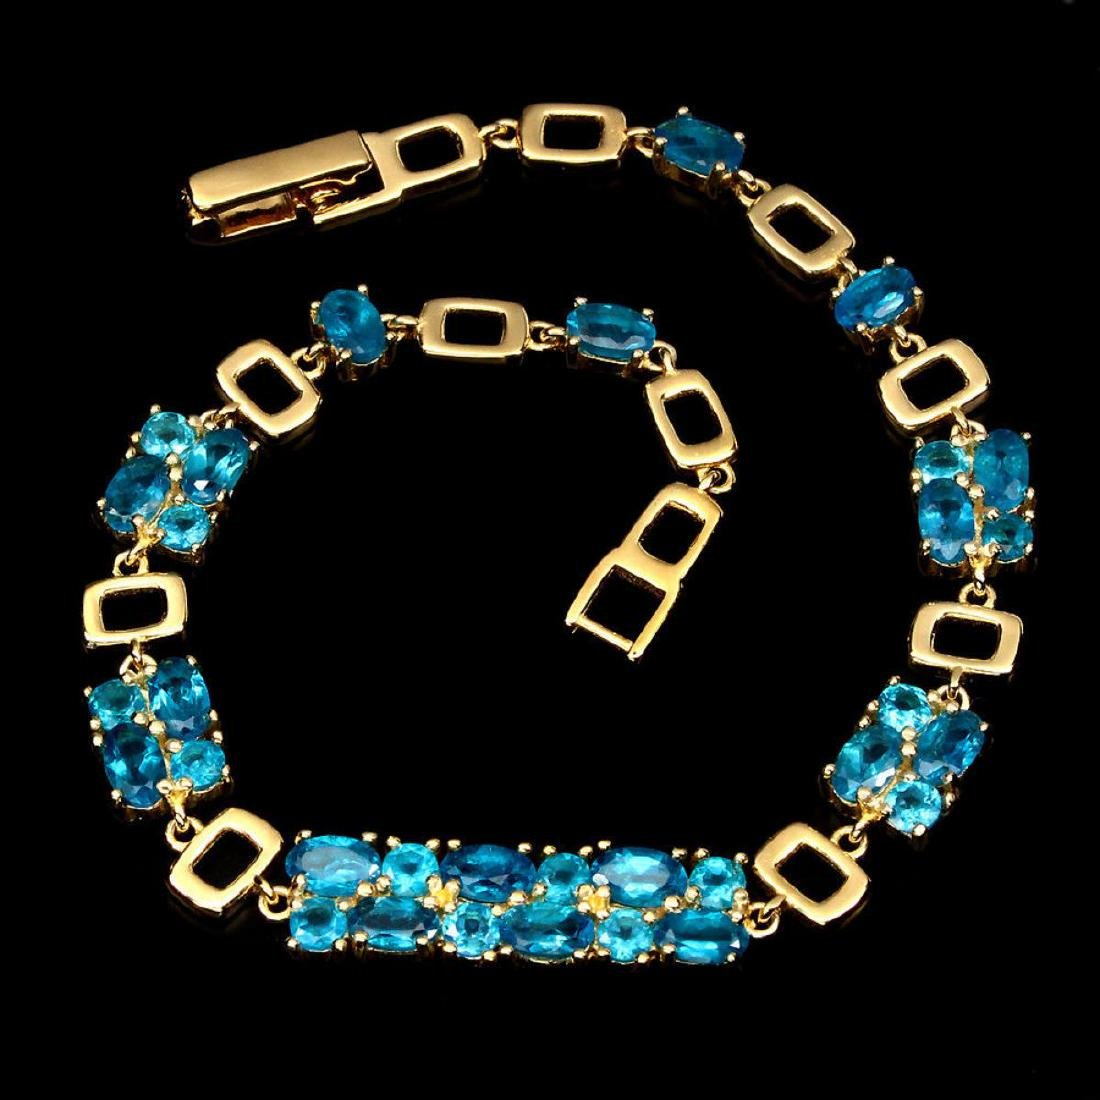 Magnificent Oval & Round AAA Neon Blue Apatite Bracelet - 2